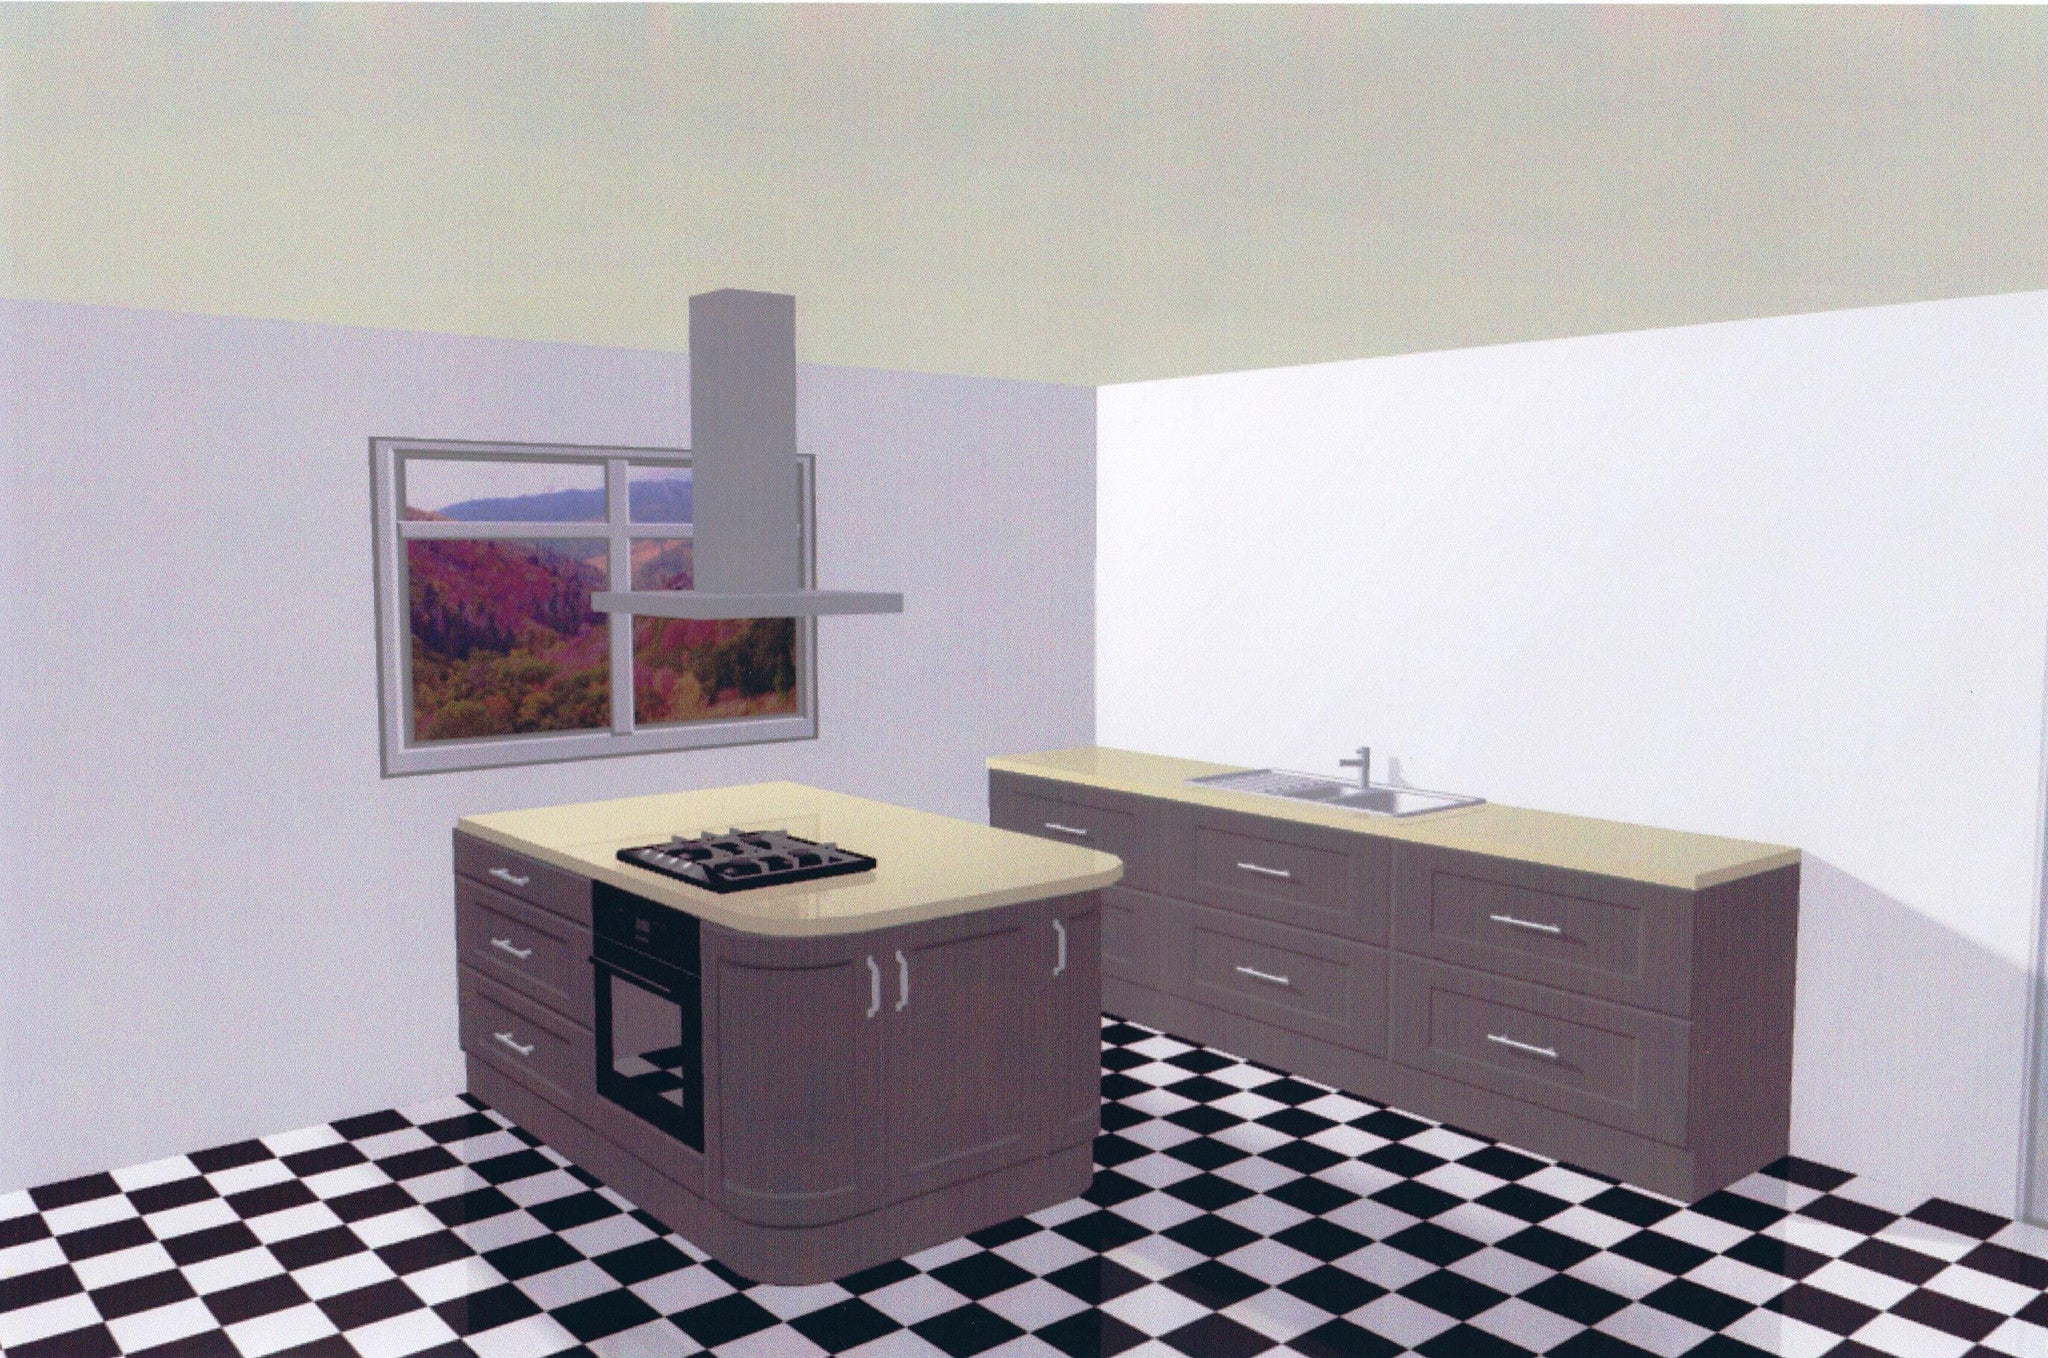 October Kitchen of the Month